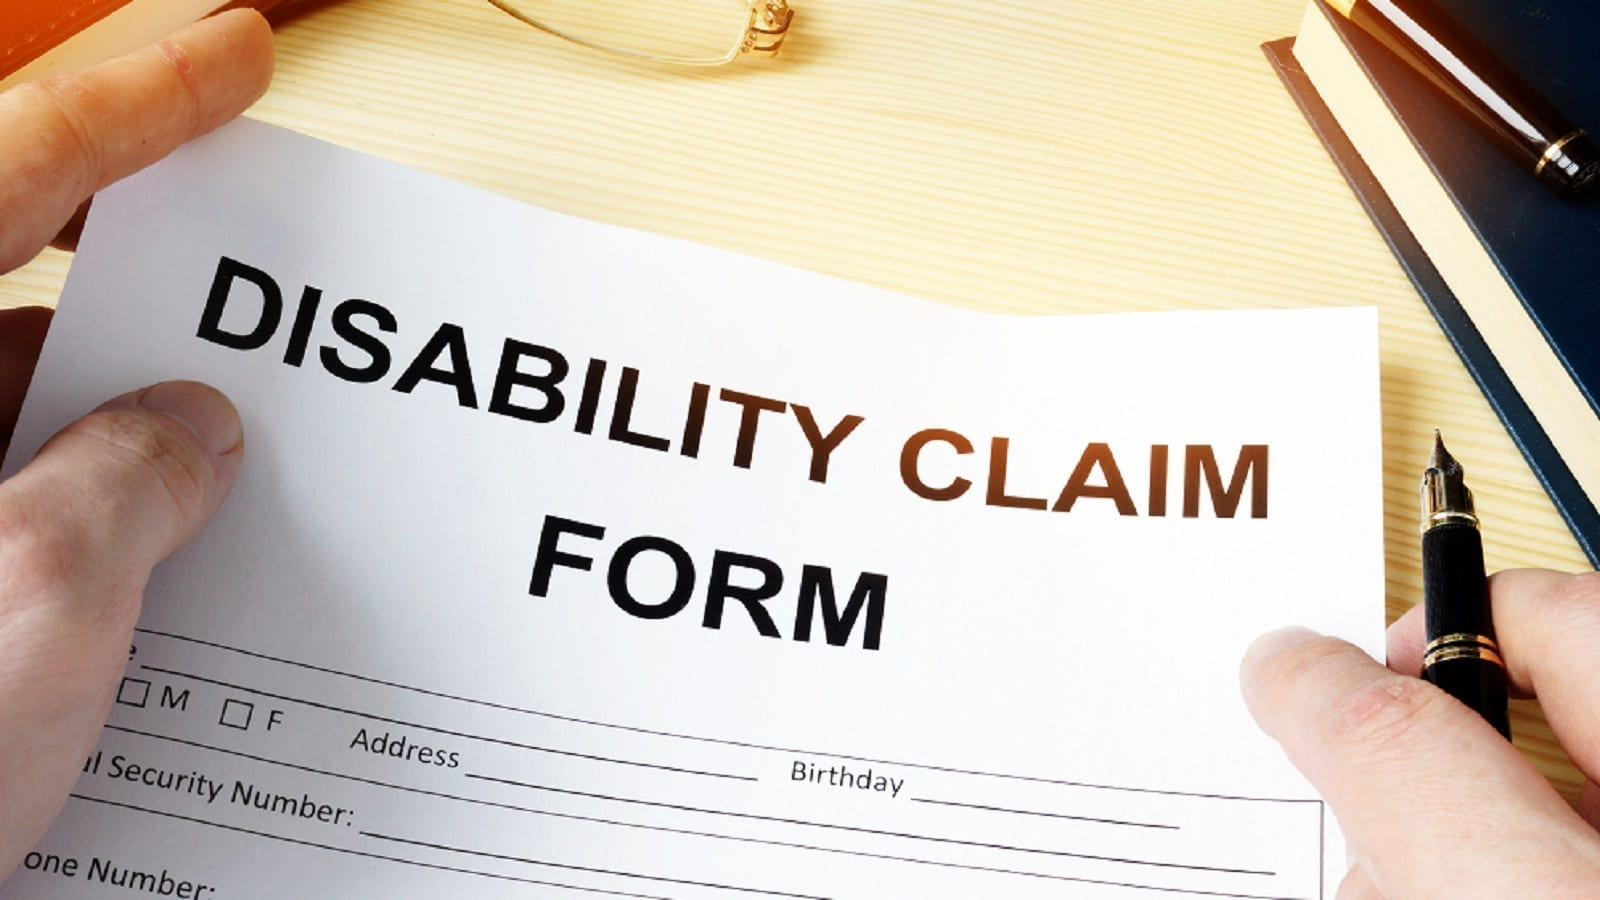 Disability Claim Form Stock Photo